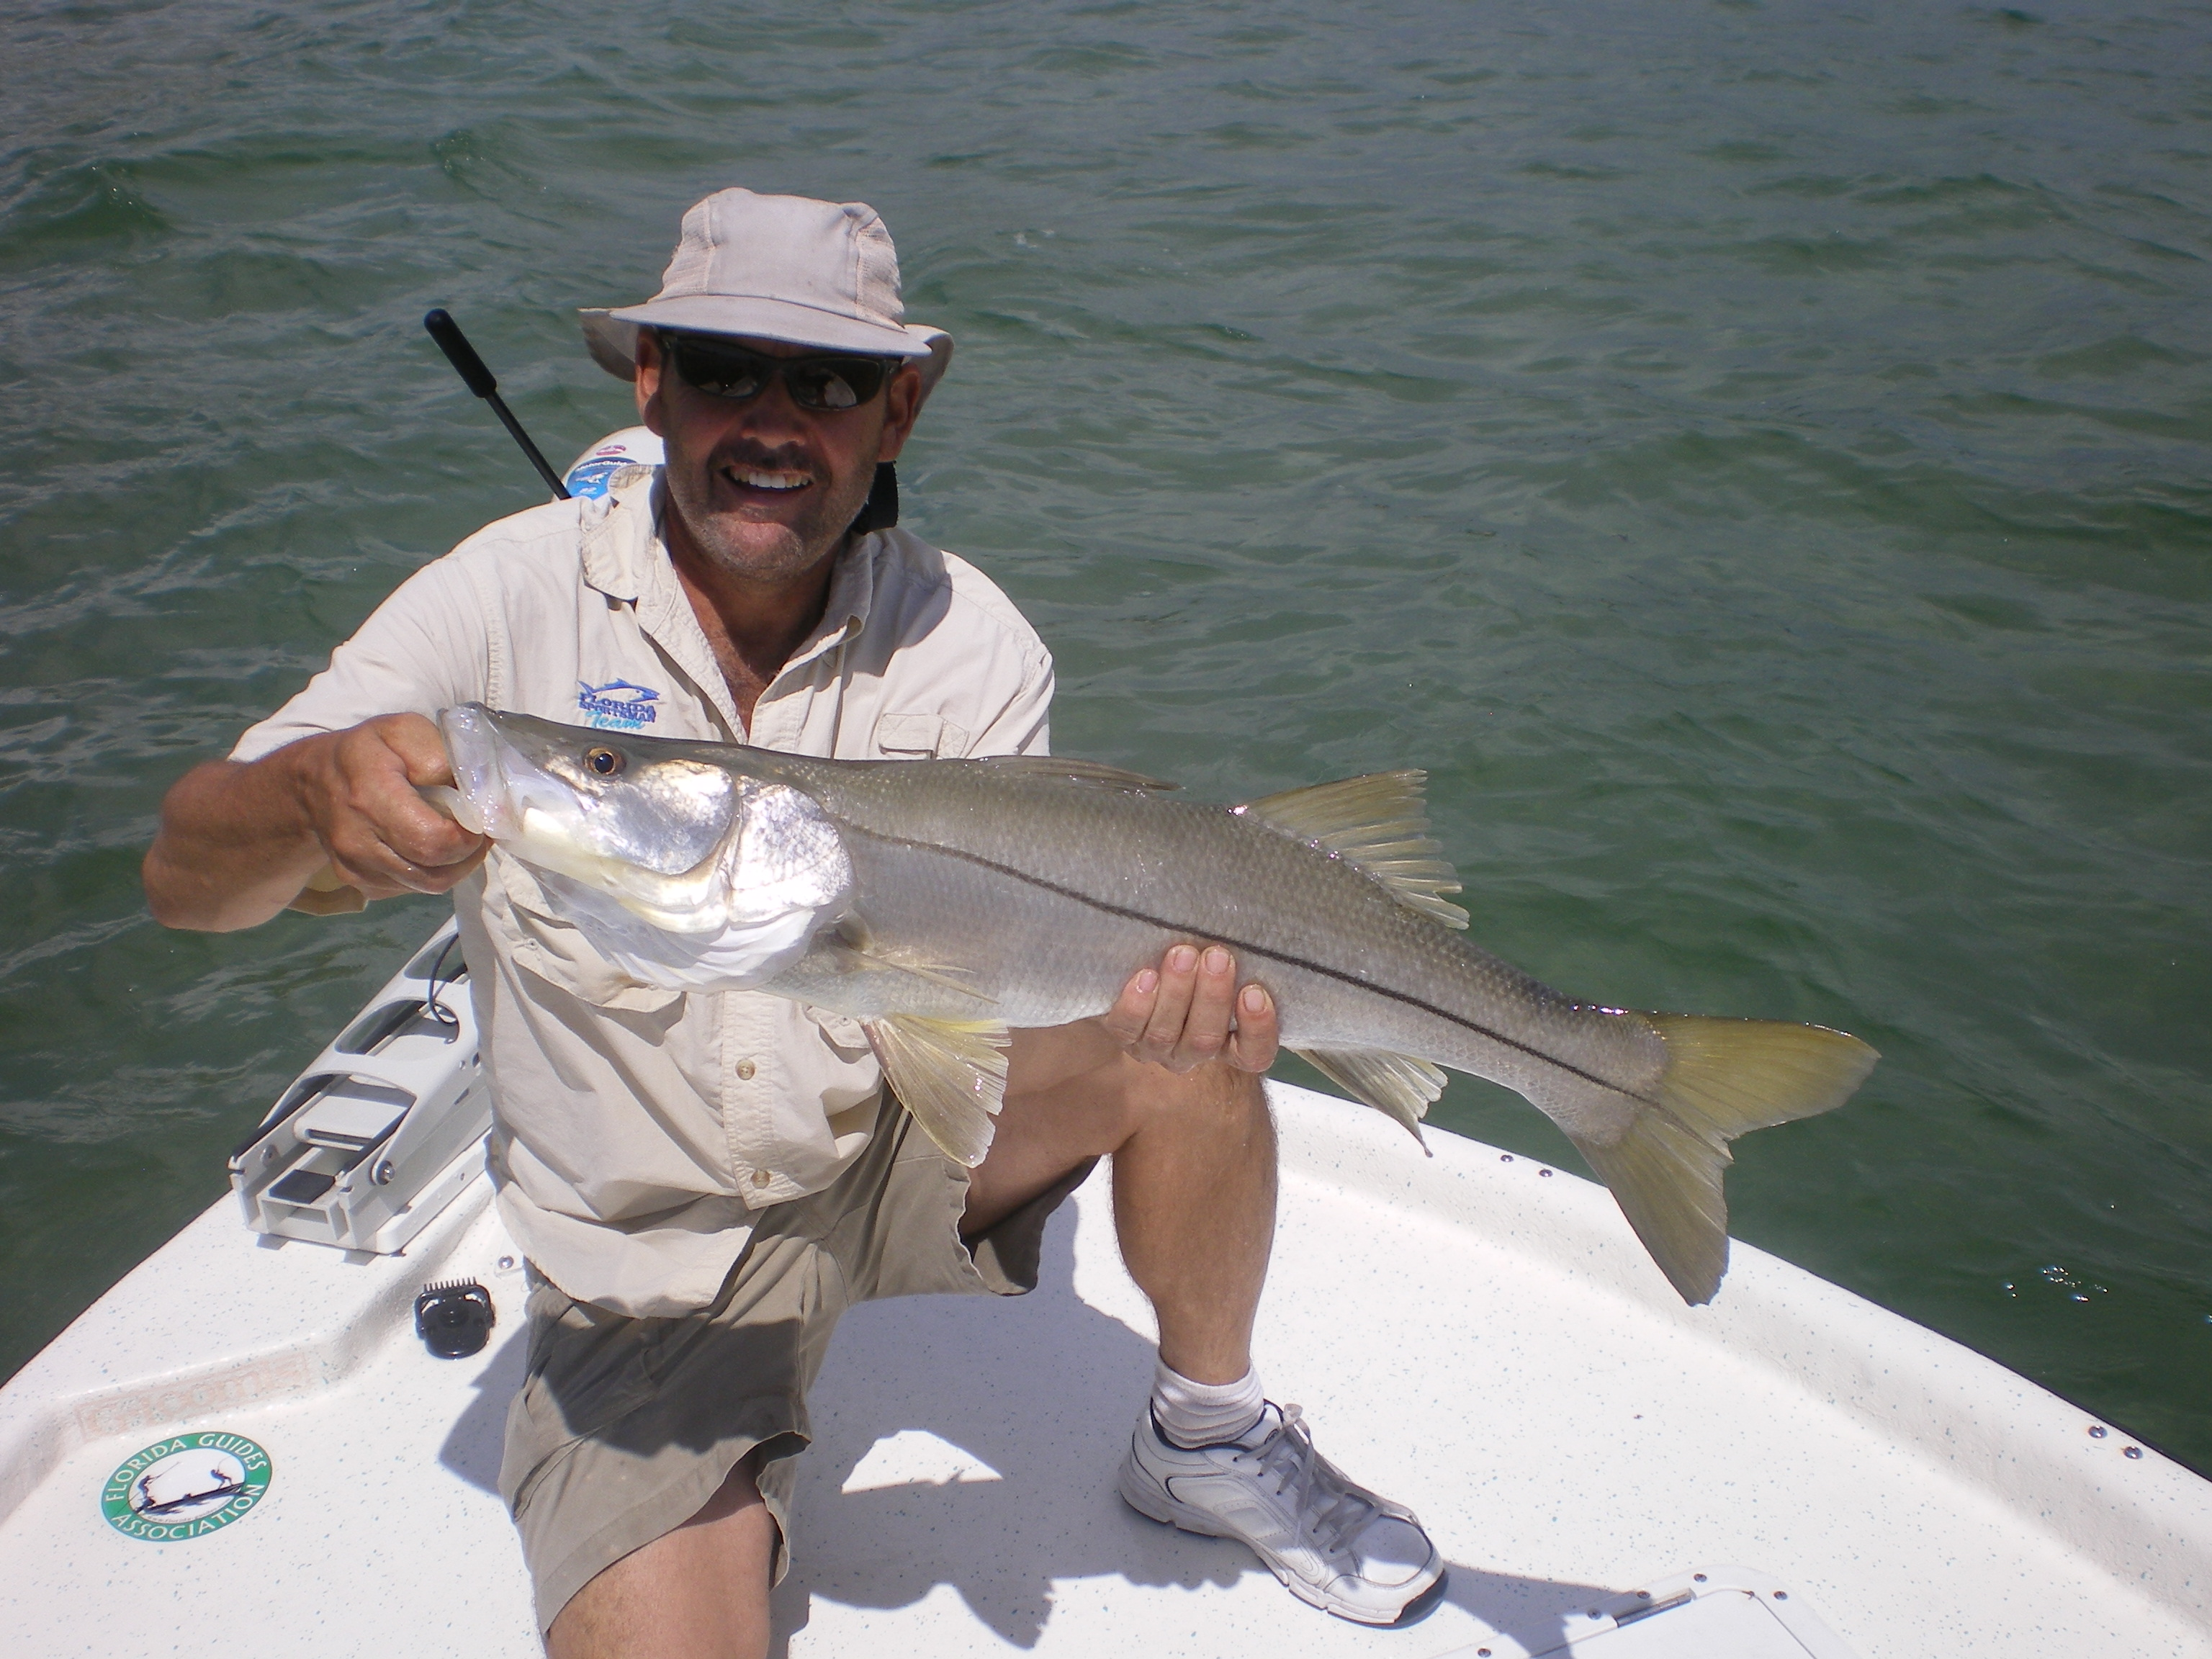 Southeast guides florida sportsman for Fishing charters west palm beach